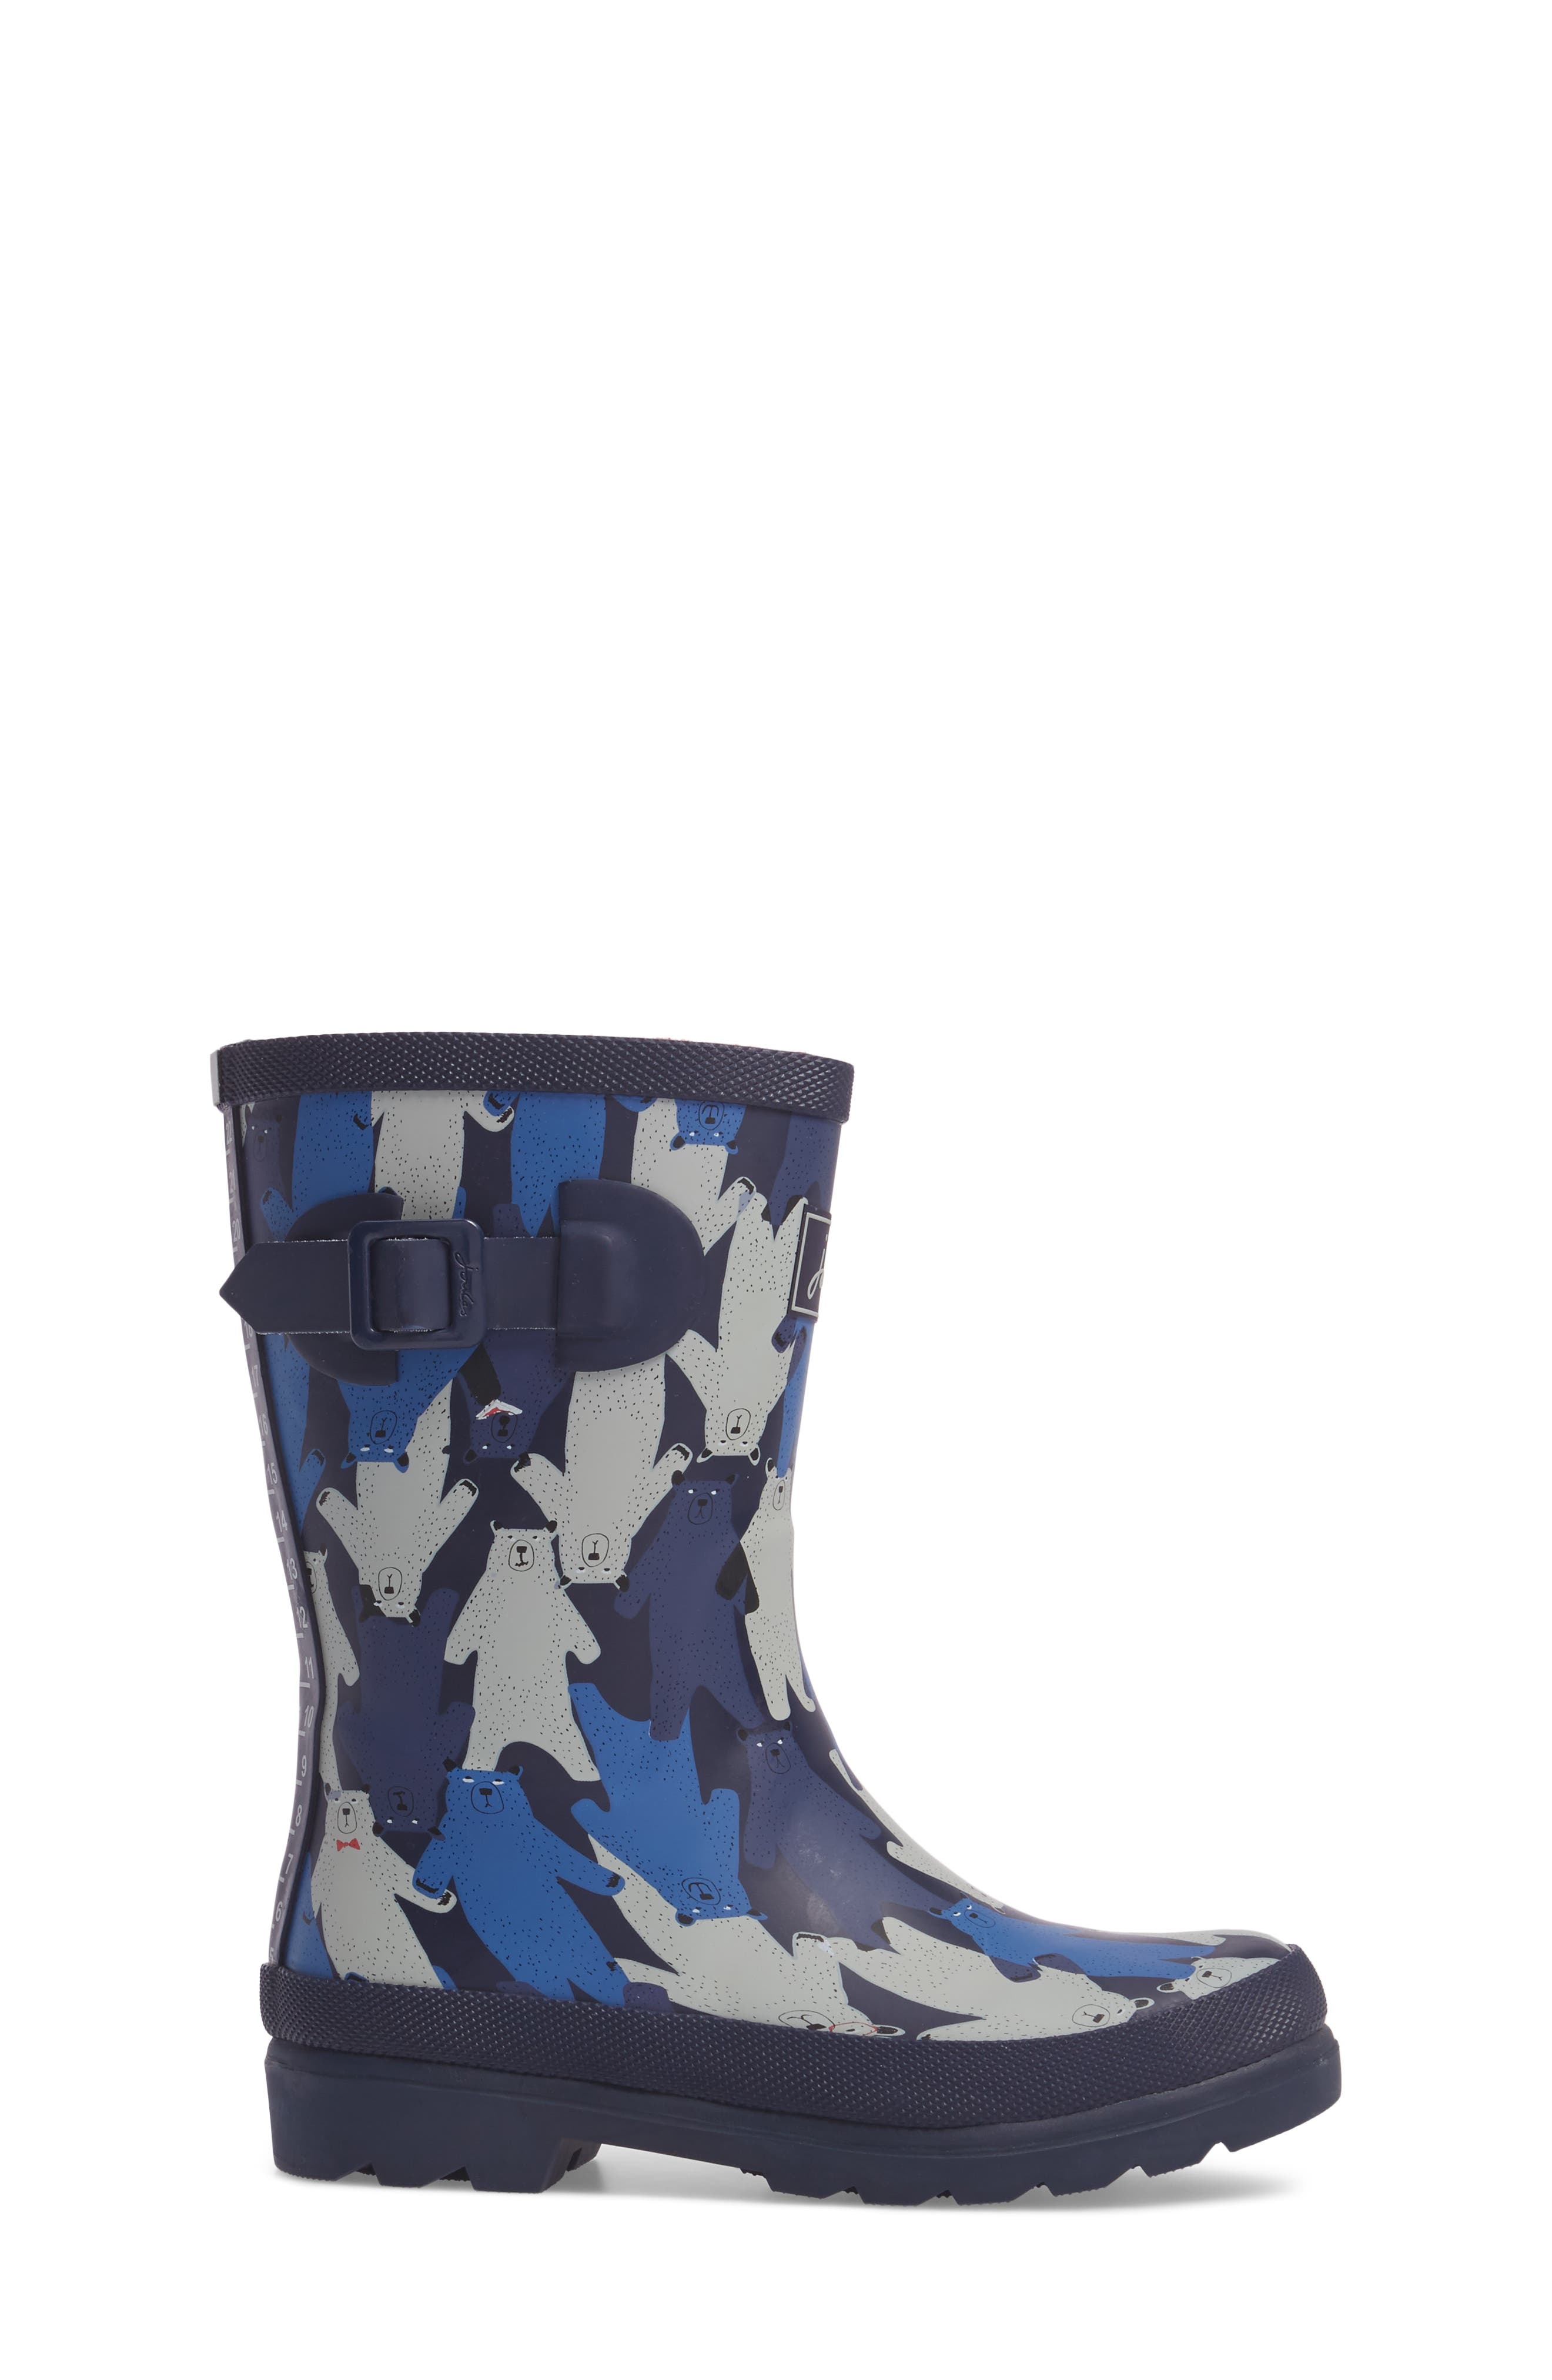 Alternate Image 3  - Joules Printed Waterproof Rain Boot (Toddler, Little Kid & Big Kid)